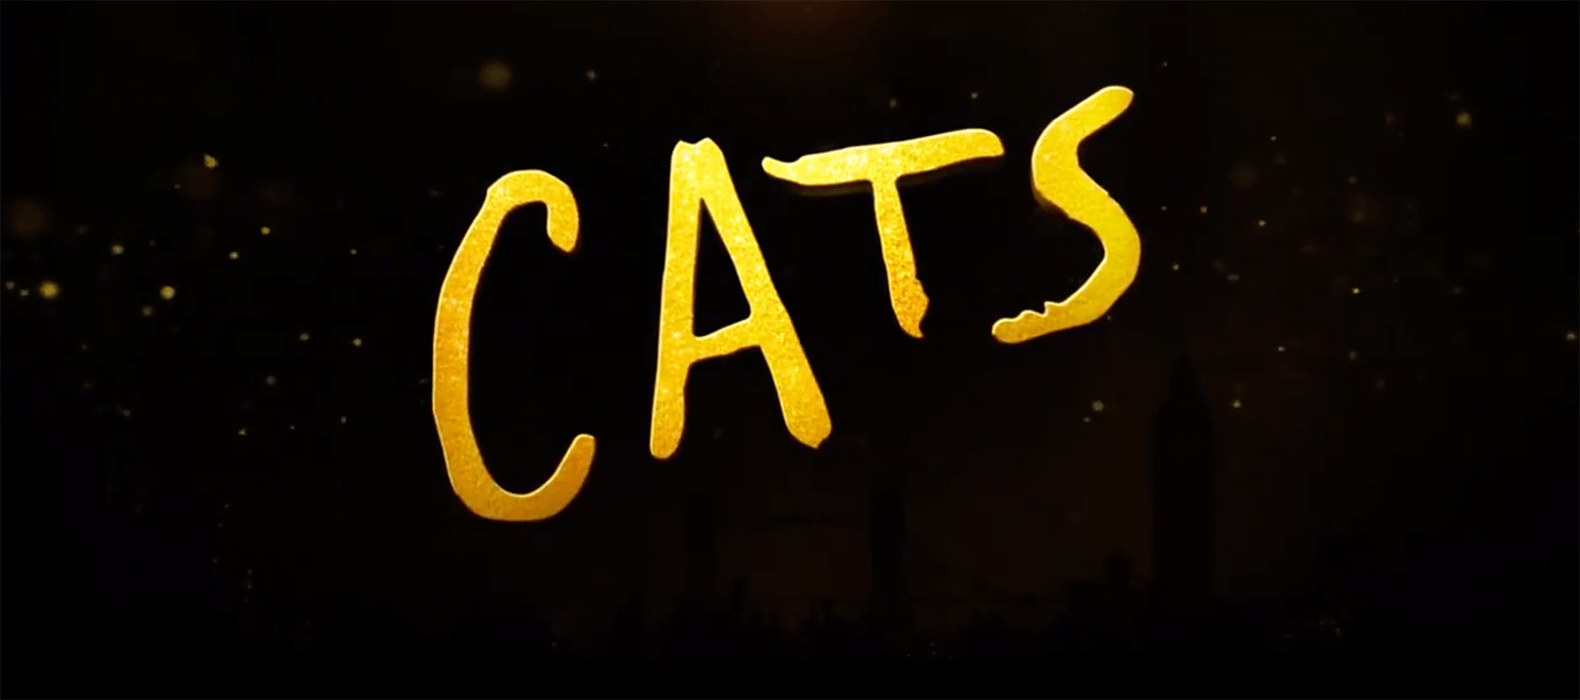 The new Cats film adaptation by Tom Hooper